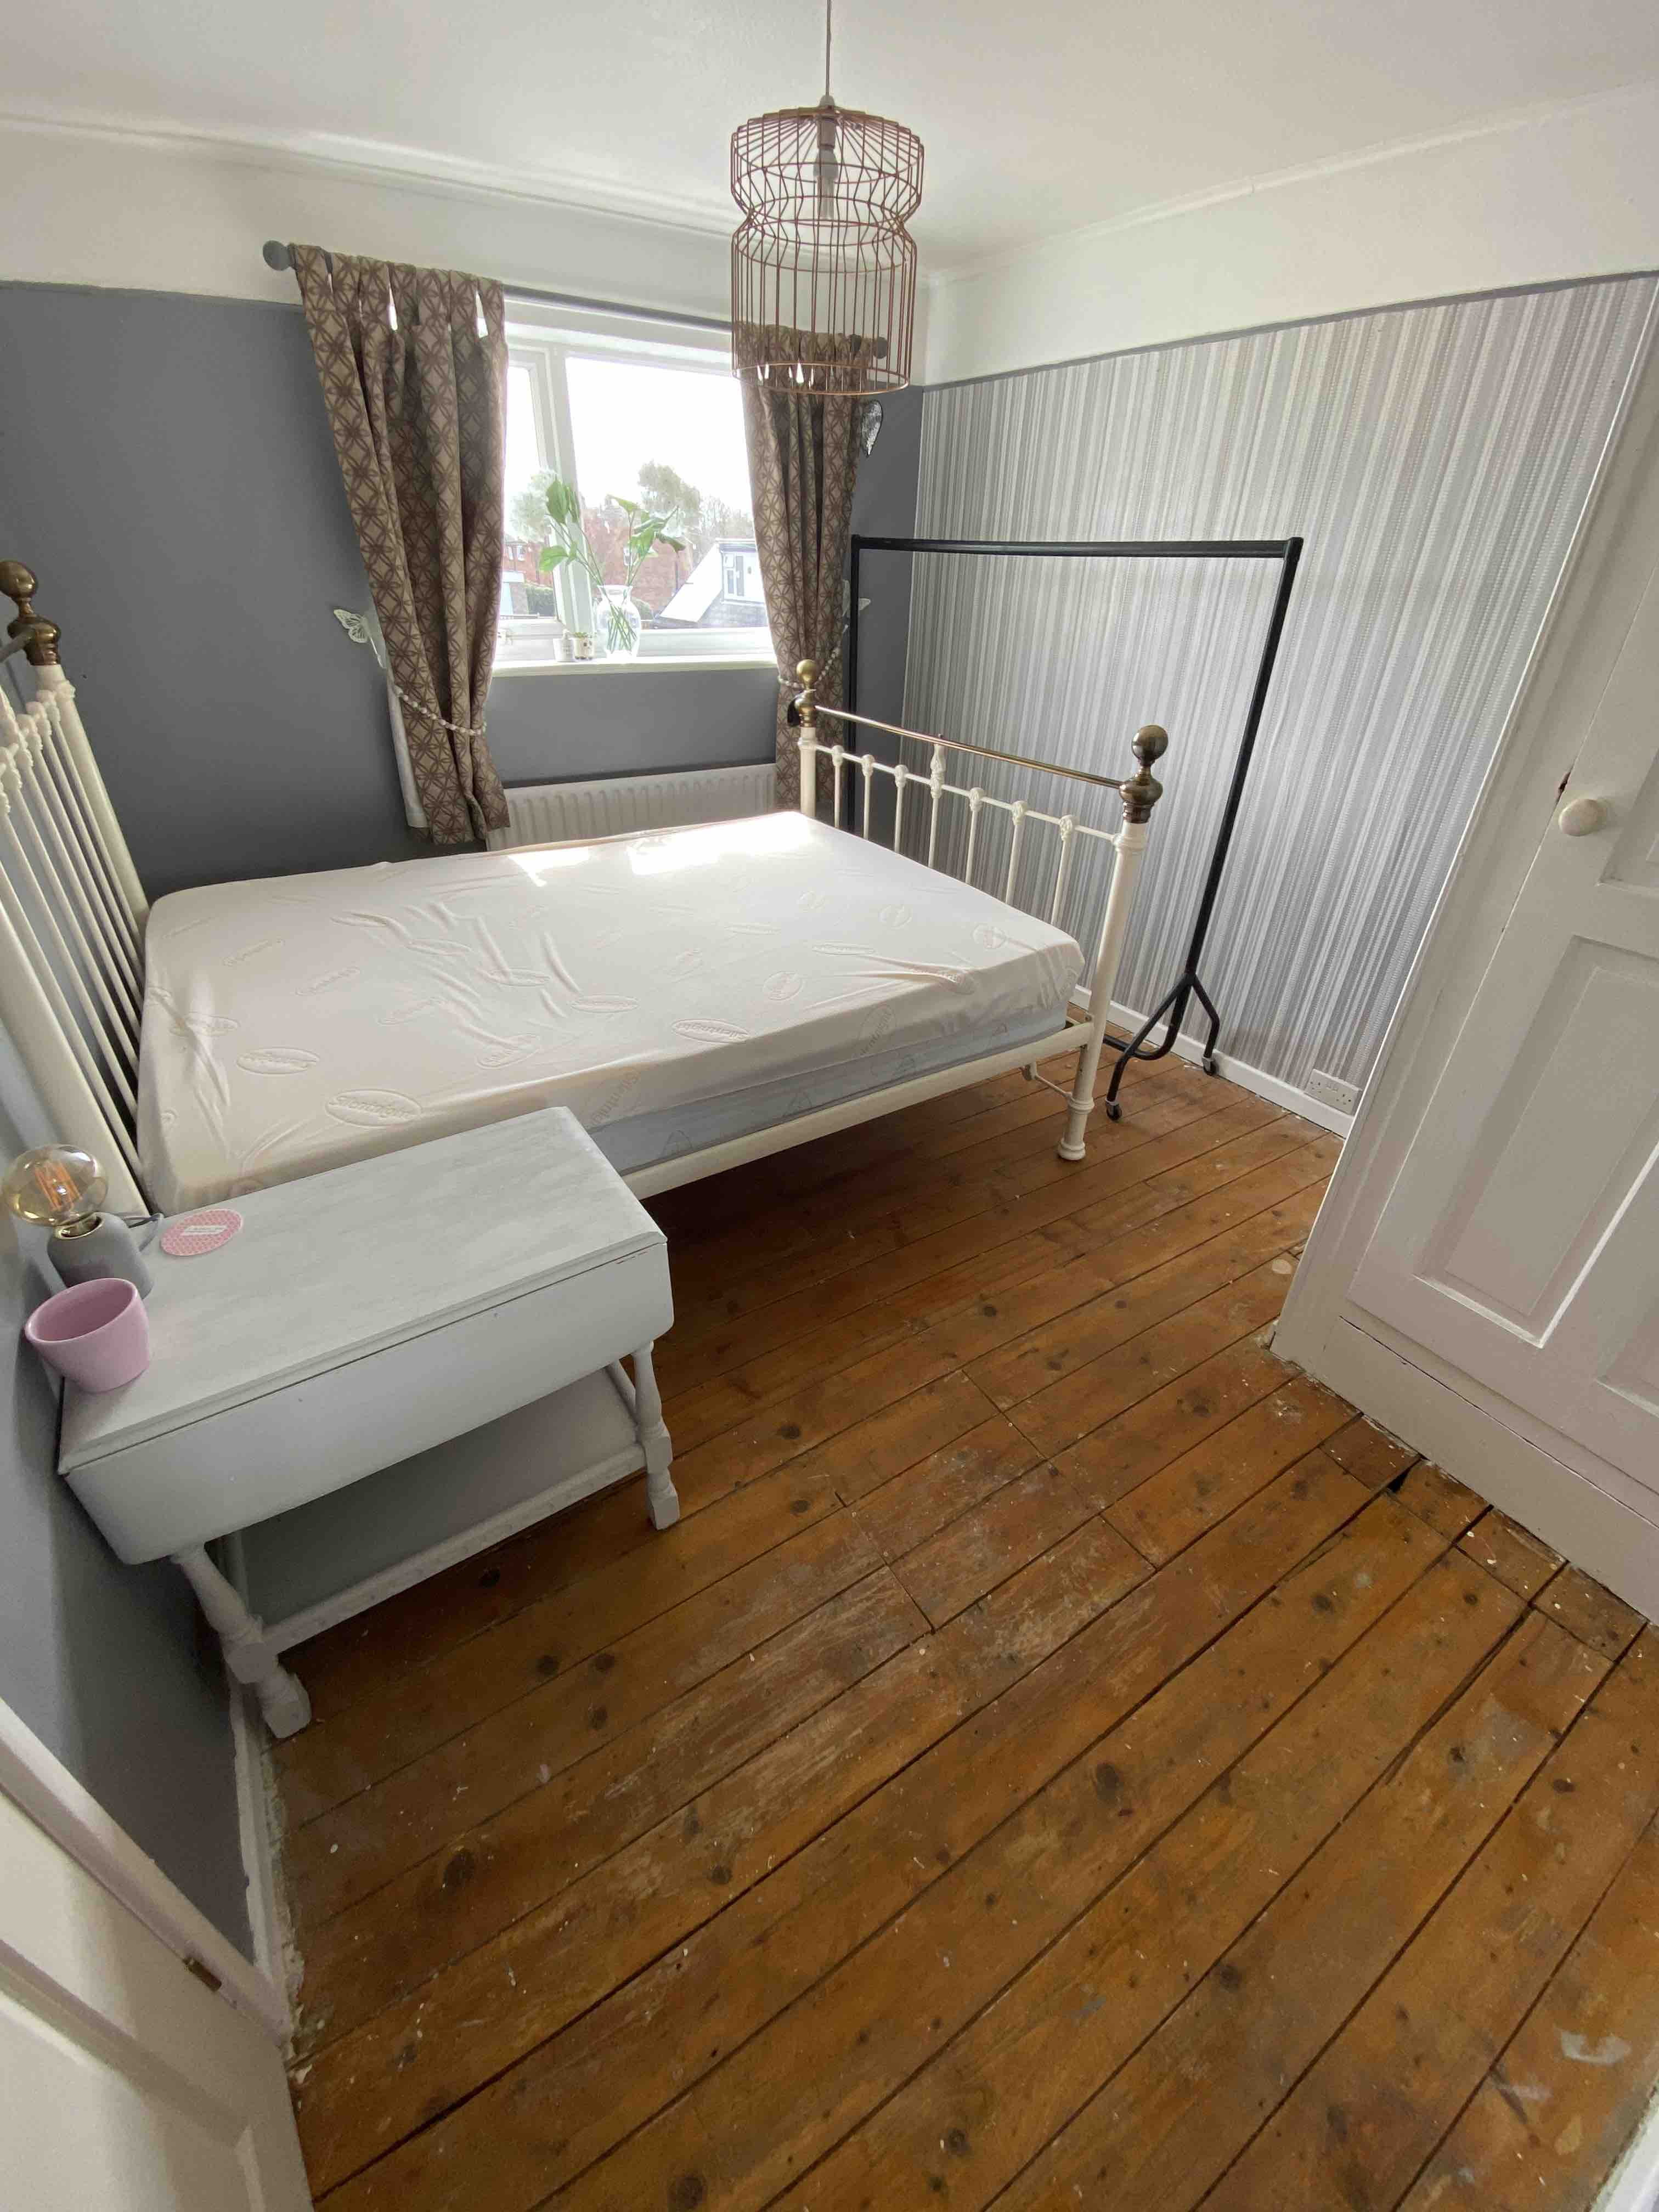 1 room in Cranwell, Sleaford, NG34 8DS RoomsLocal image